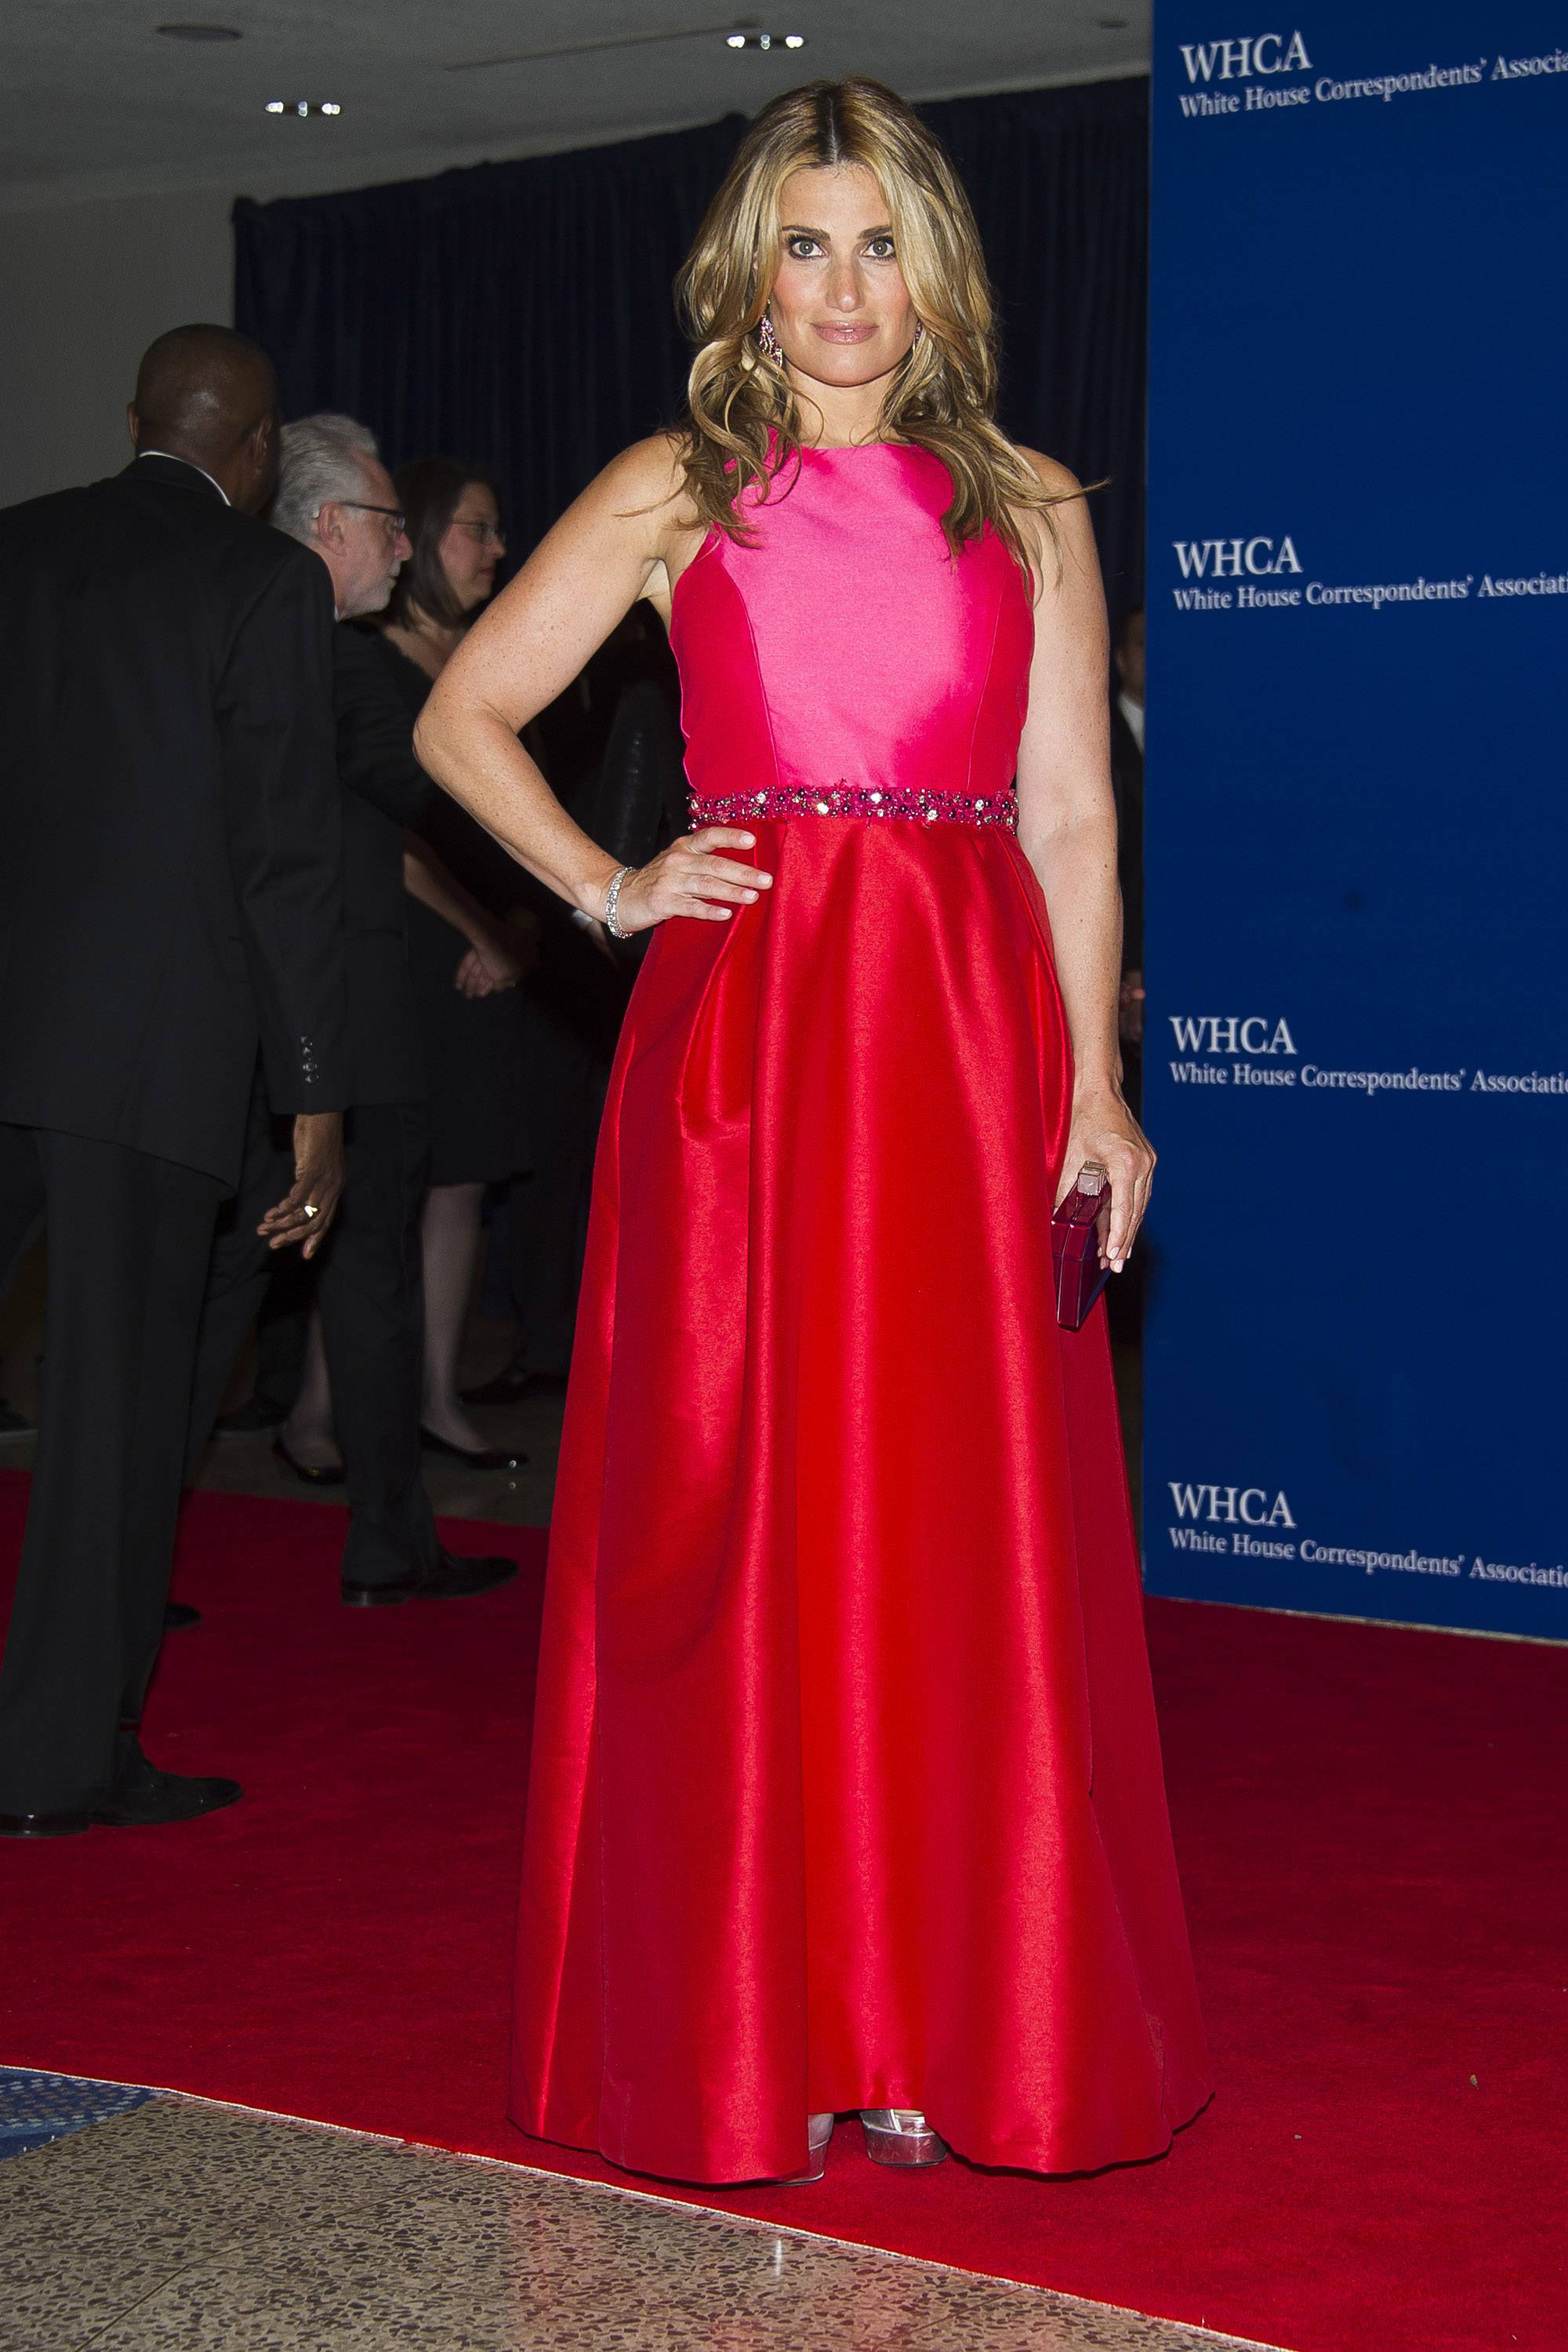 Idina Menzel attends the 2015 White House Correspondents' Association Dinner at the Washington Hilton Hotel on Saturday, April 25, in Washington, D.C.